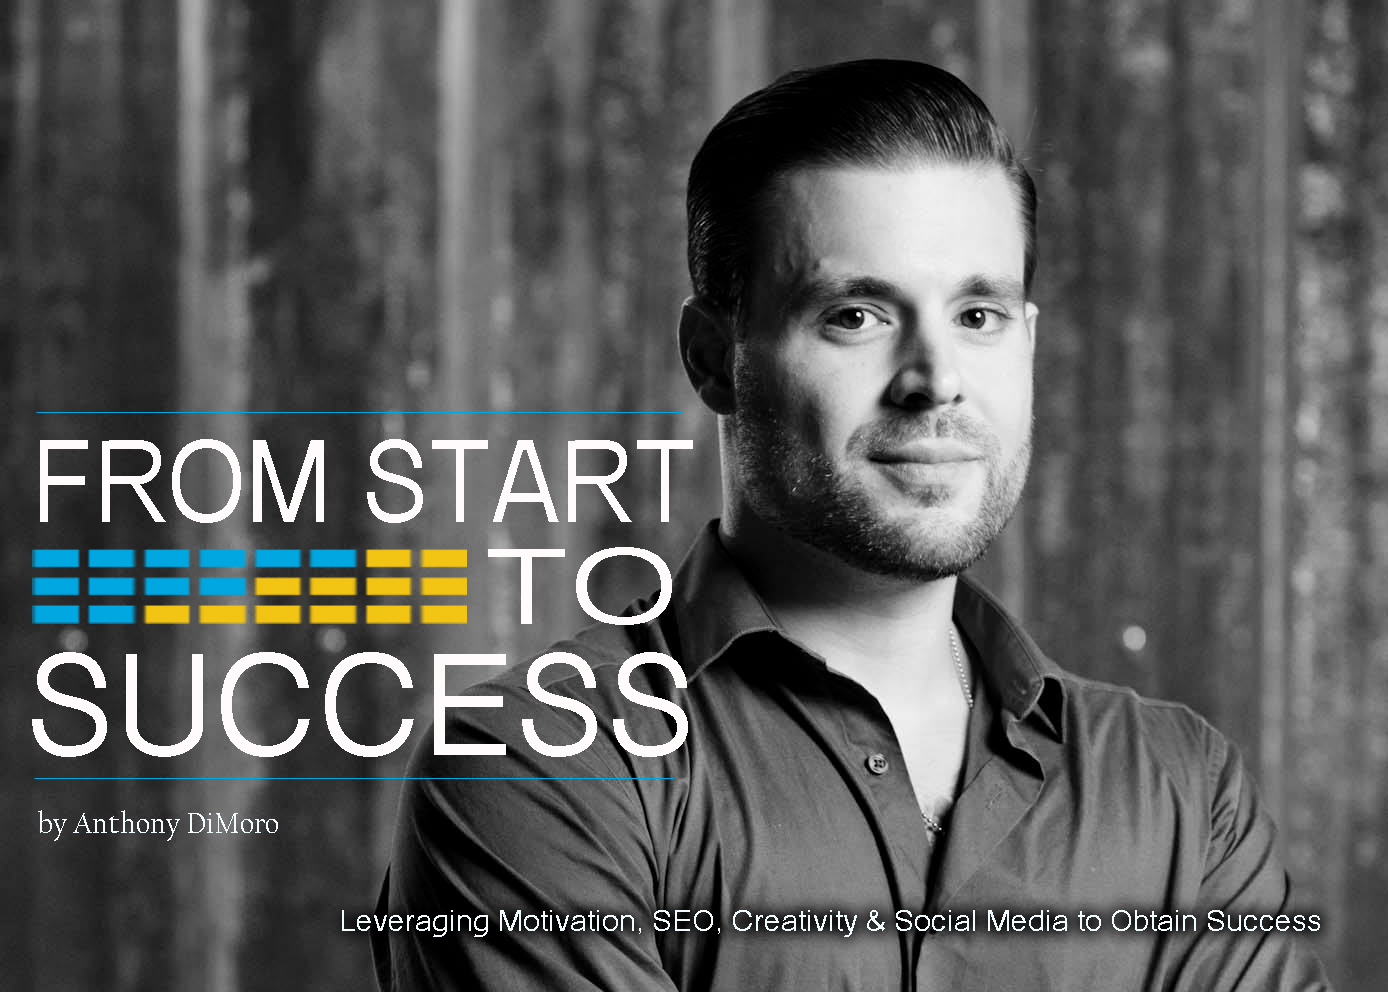 From Start To Success